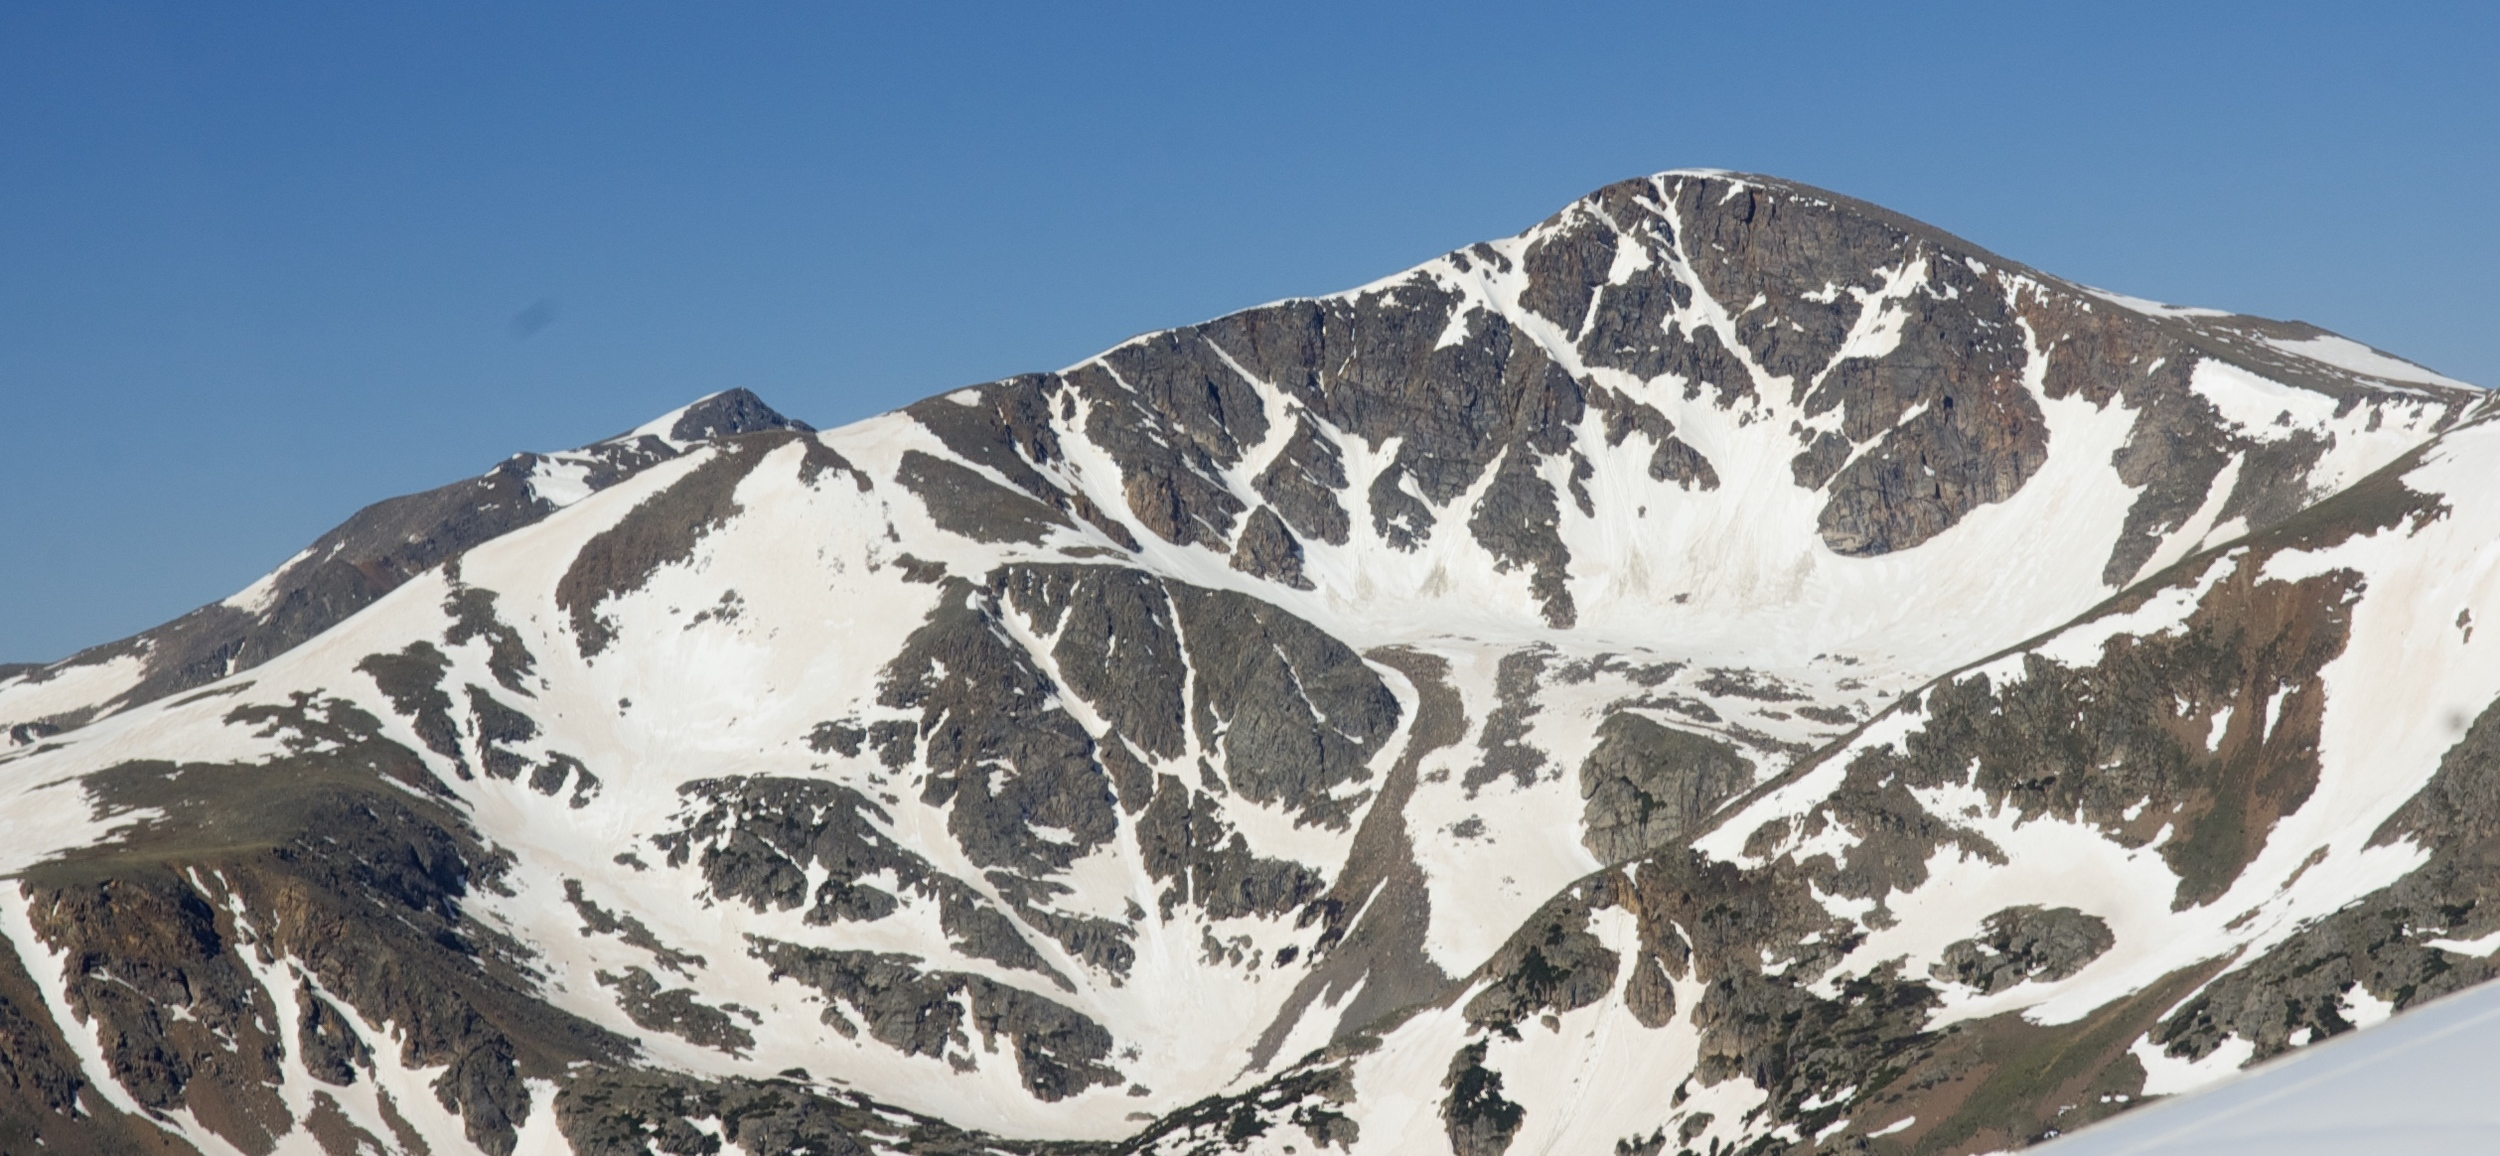 James Peak from the east.